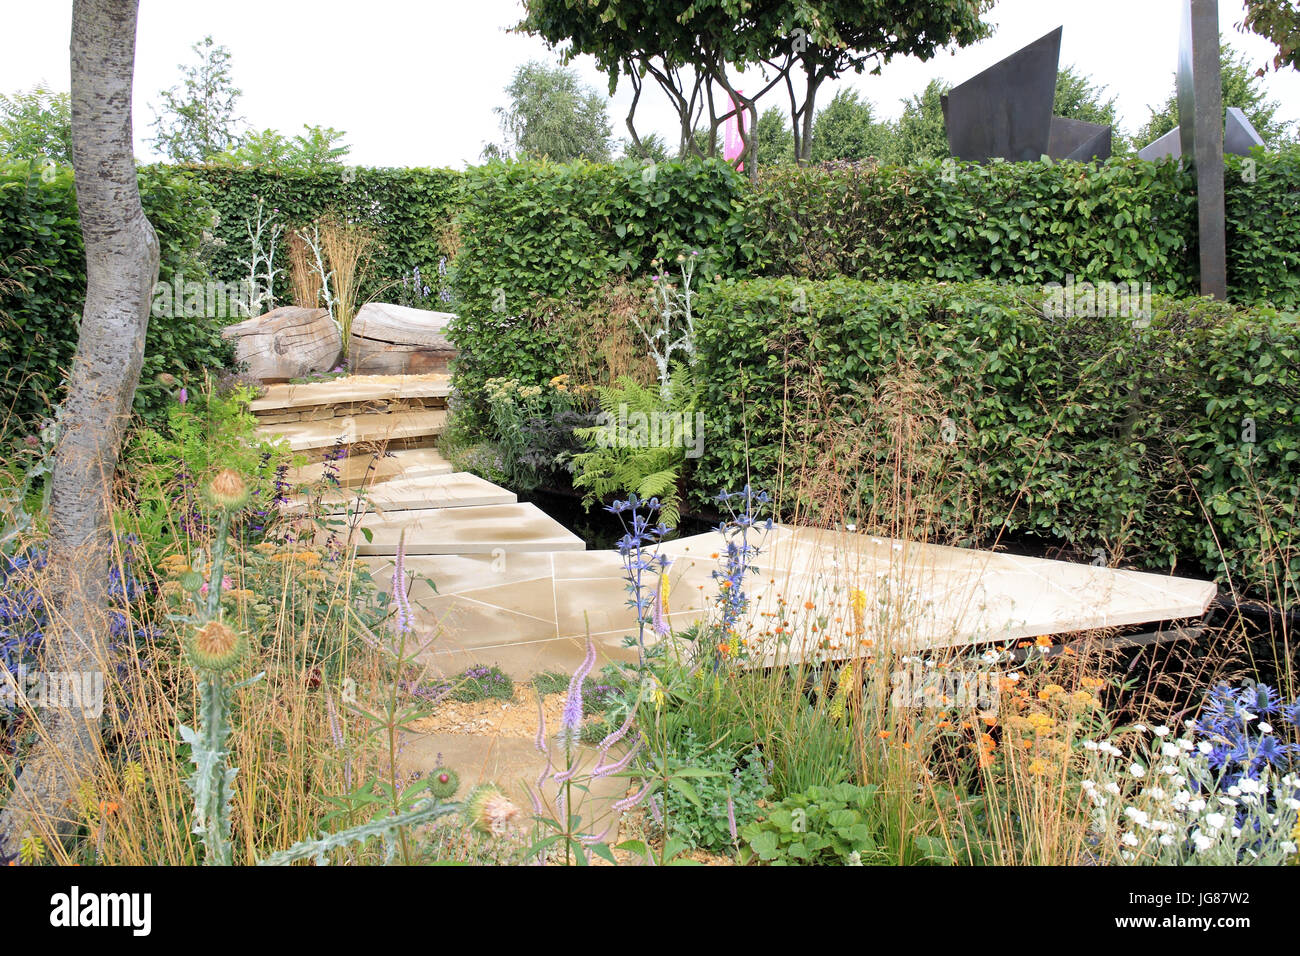 RHS 'Watch This Space', designed Andy Sturgeon. Show Garden. RHS Hampton Court Palace Flower Show, London, England, Stock Photo